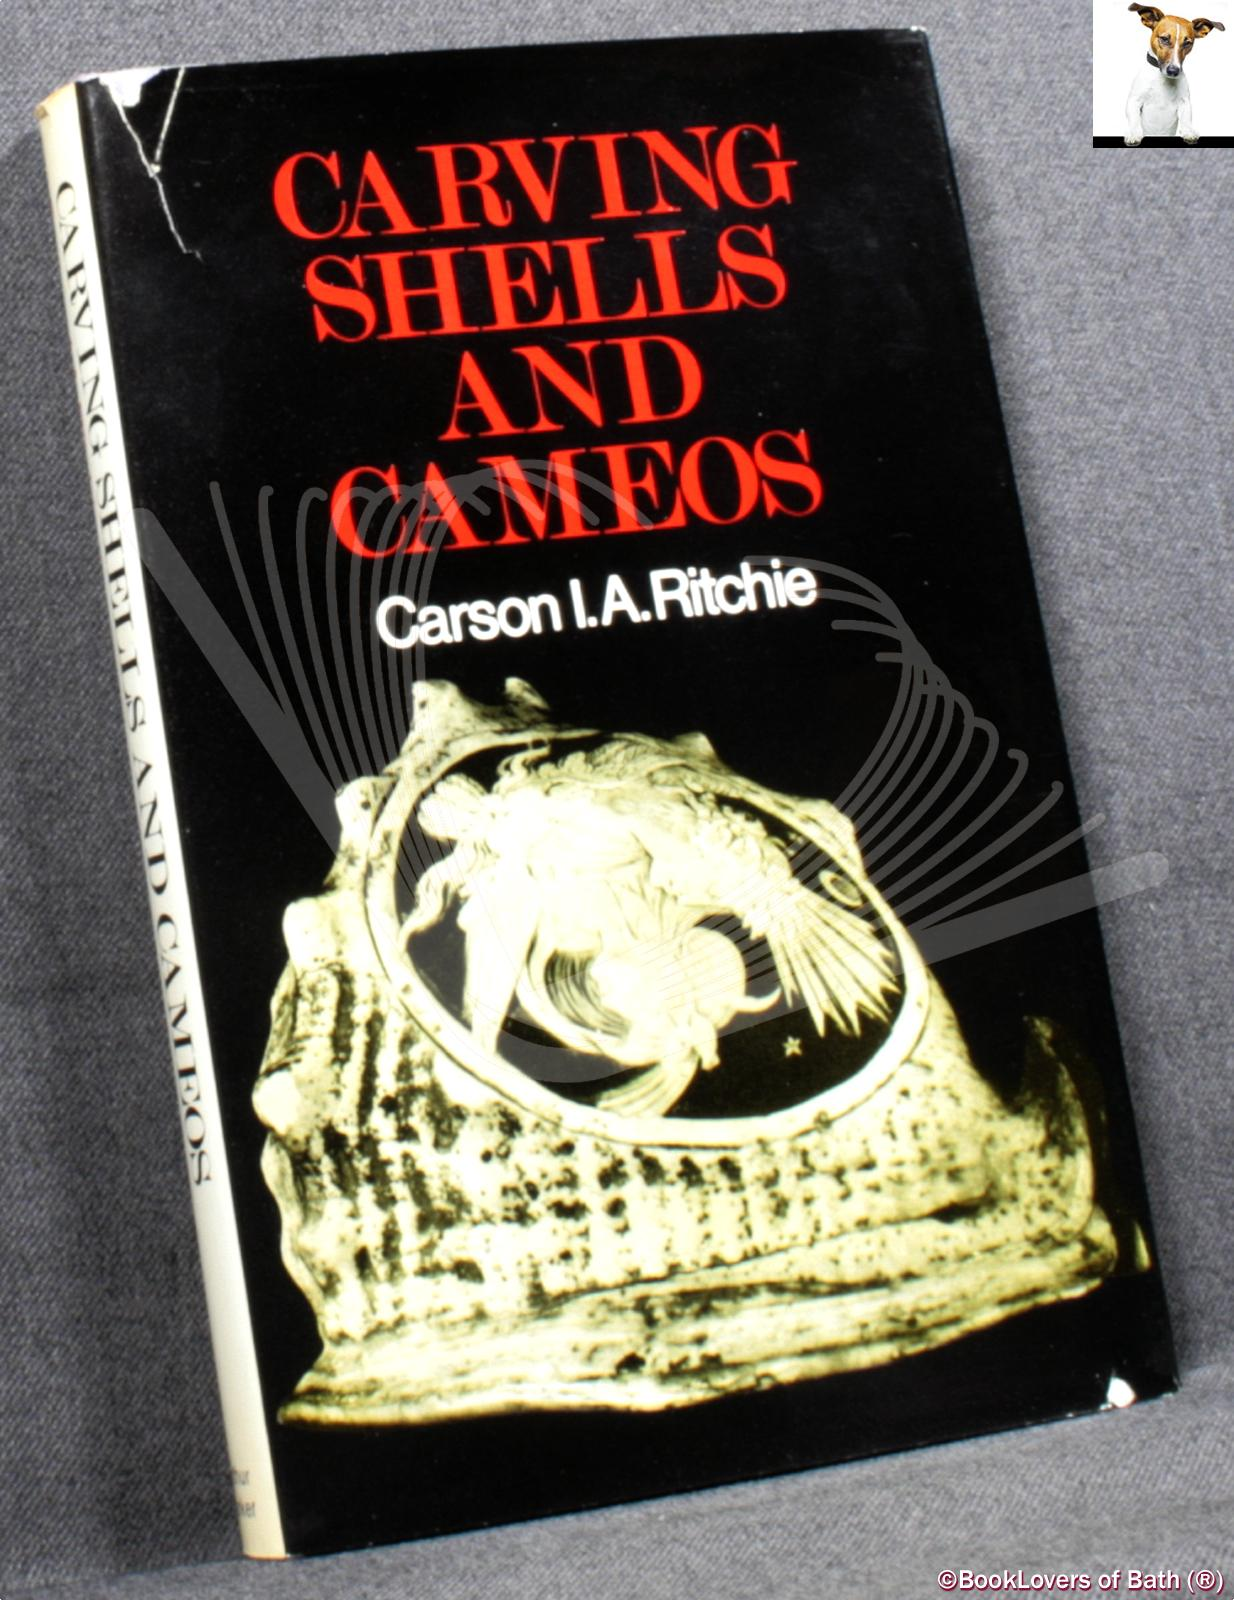 Carving Shells and Cameos, and Other Marine Products: Tortoiseshell, Coral, Amber, Jet - Carson I. A. Ritchie